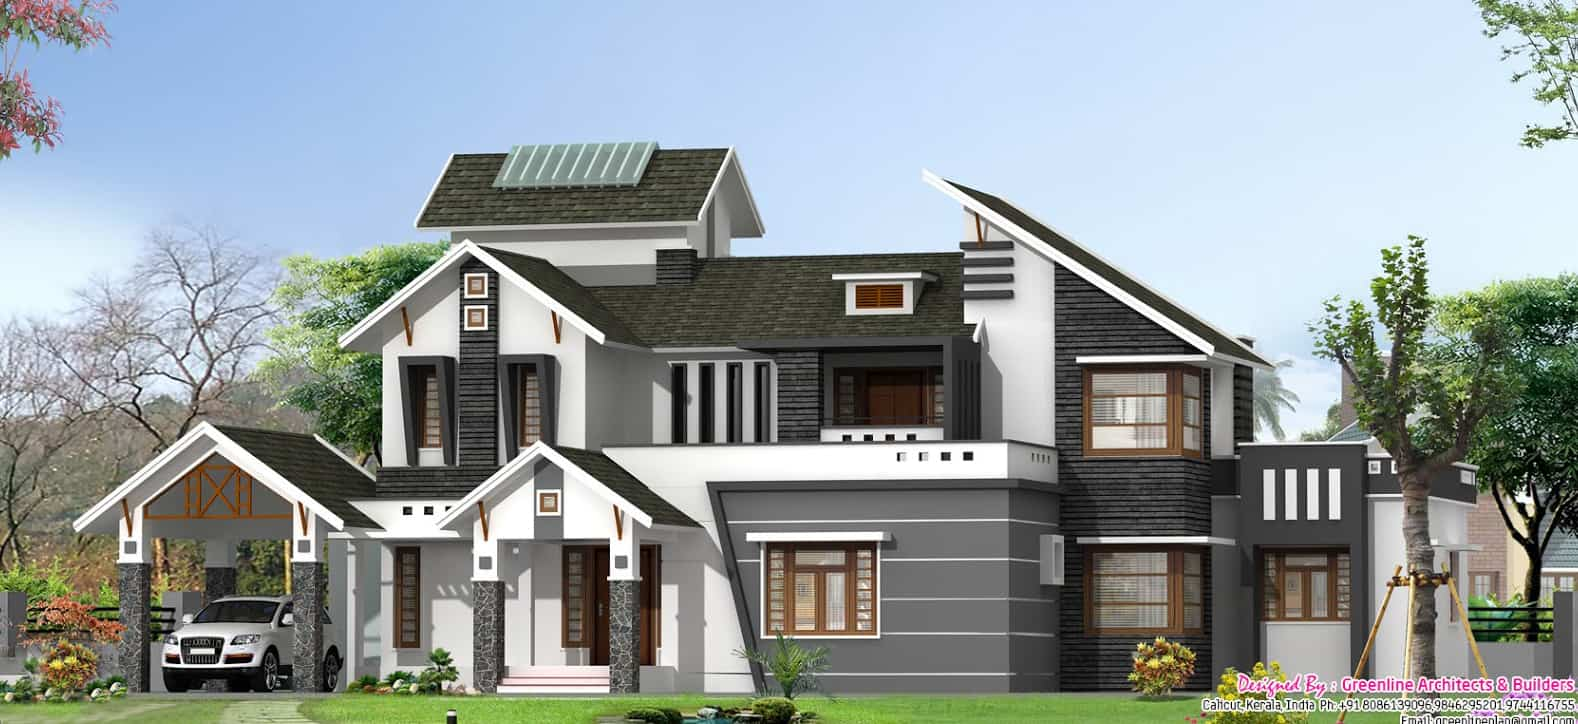 Unique house designs keralahouseplanner - Unique house design ...